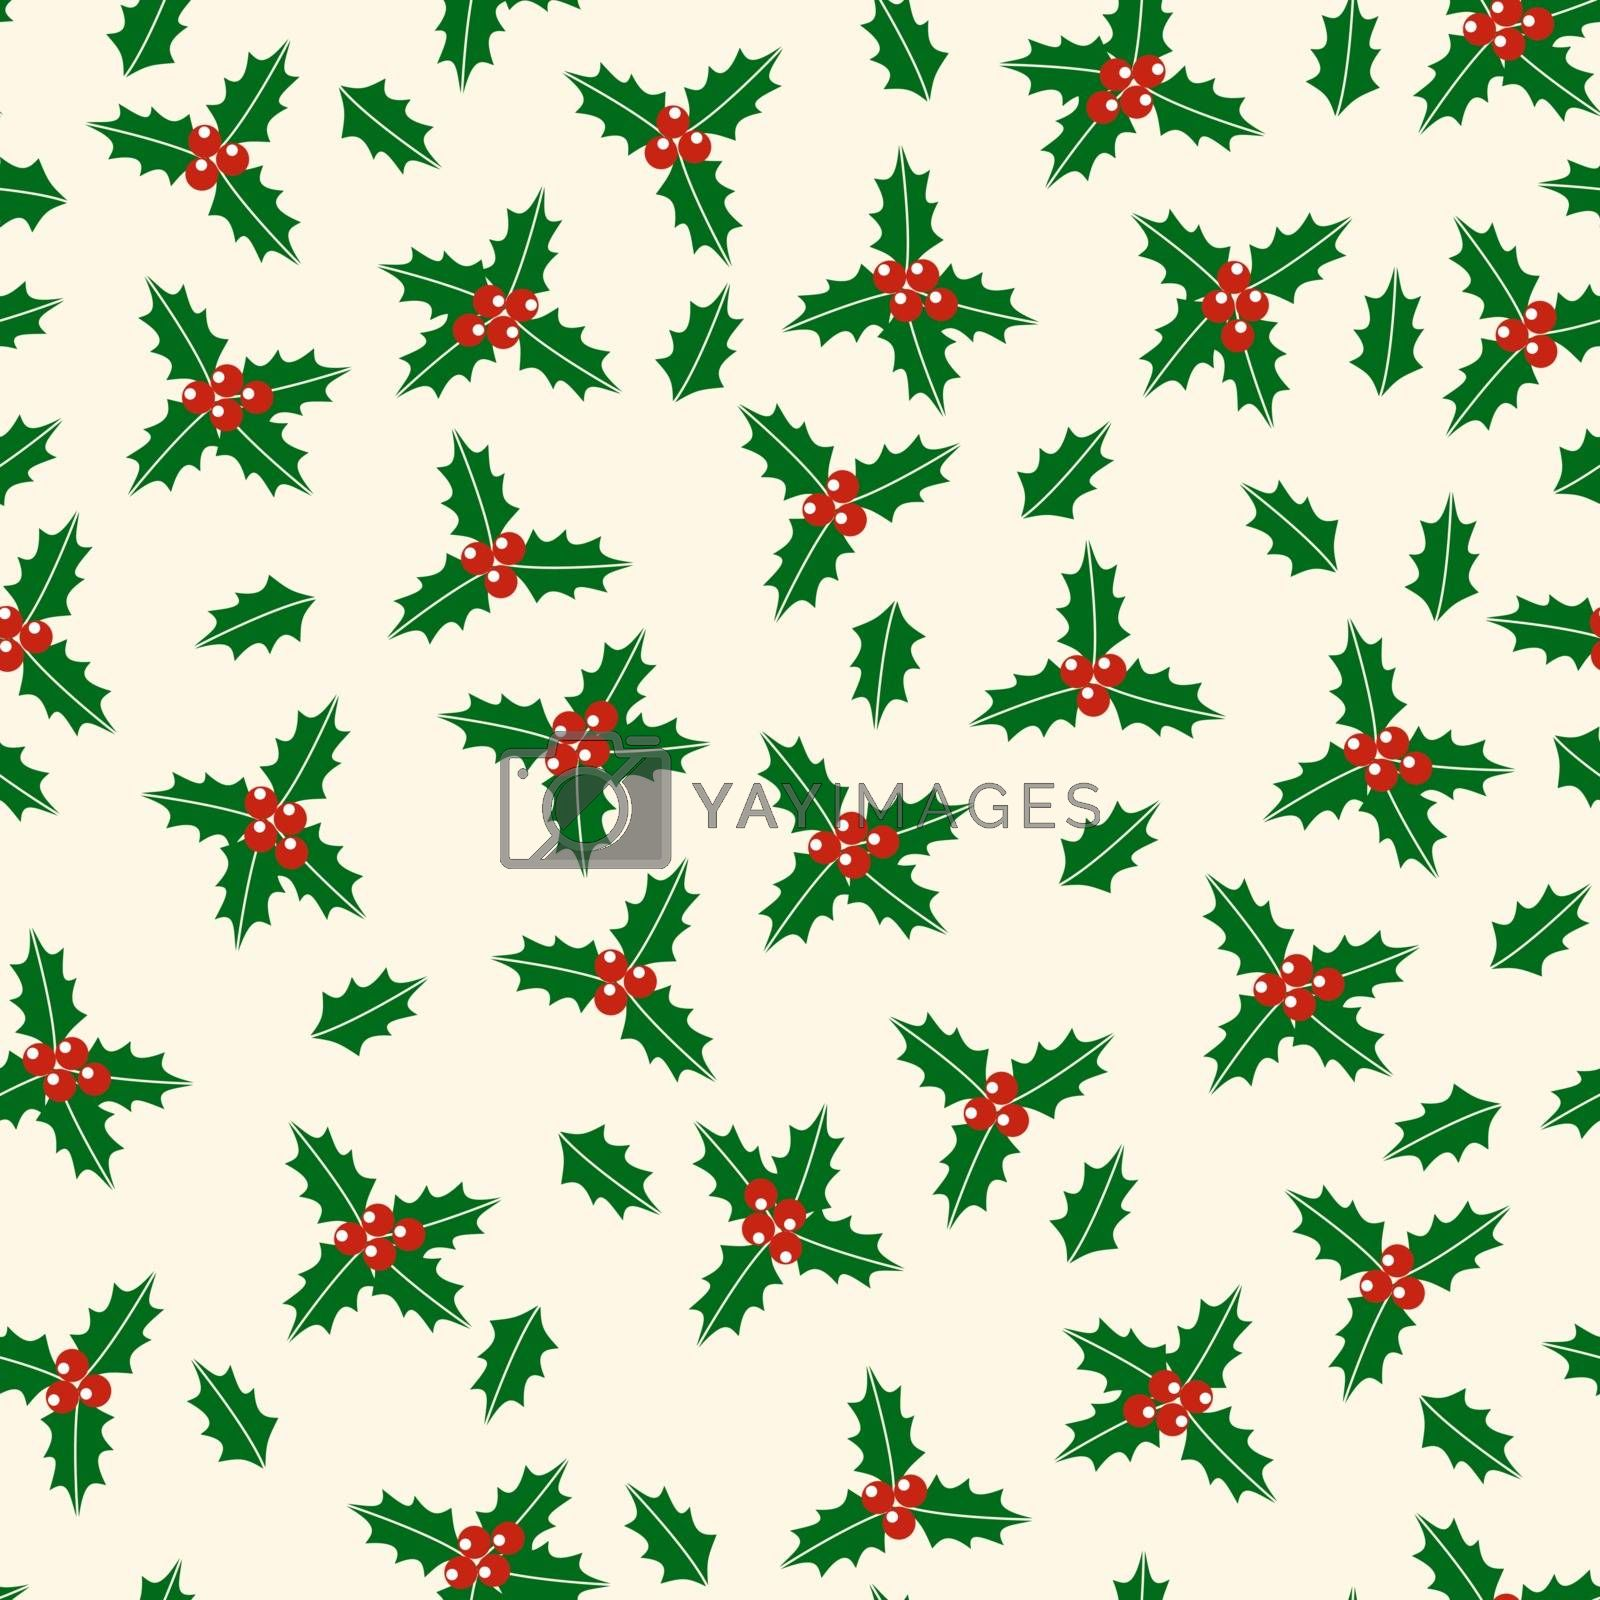 Christmas pattern by kartyl